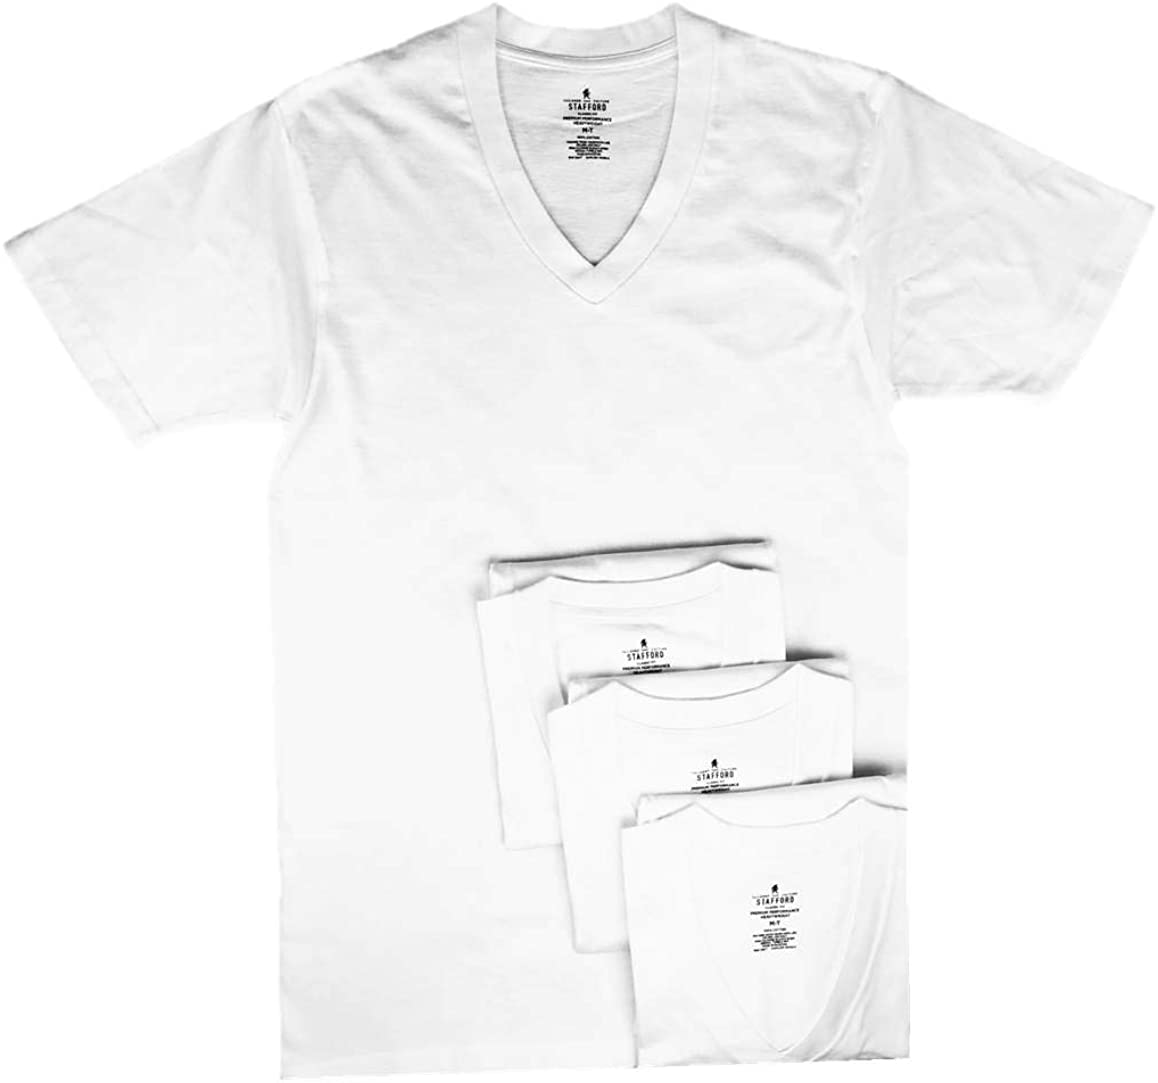 Stafford Men's Tall/Extra Tall 100% Heavy Weight Cotton V-Neck Undershirt, White, Short Sleeve, 4 Pack